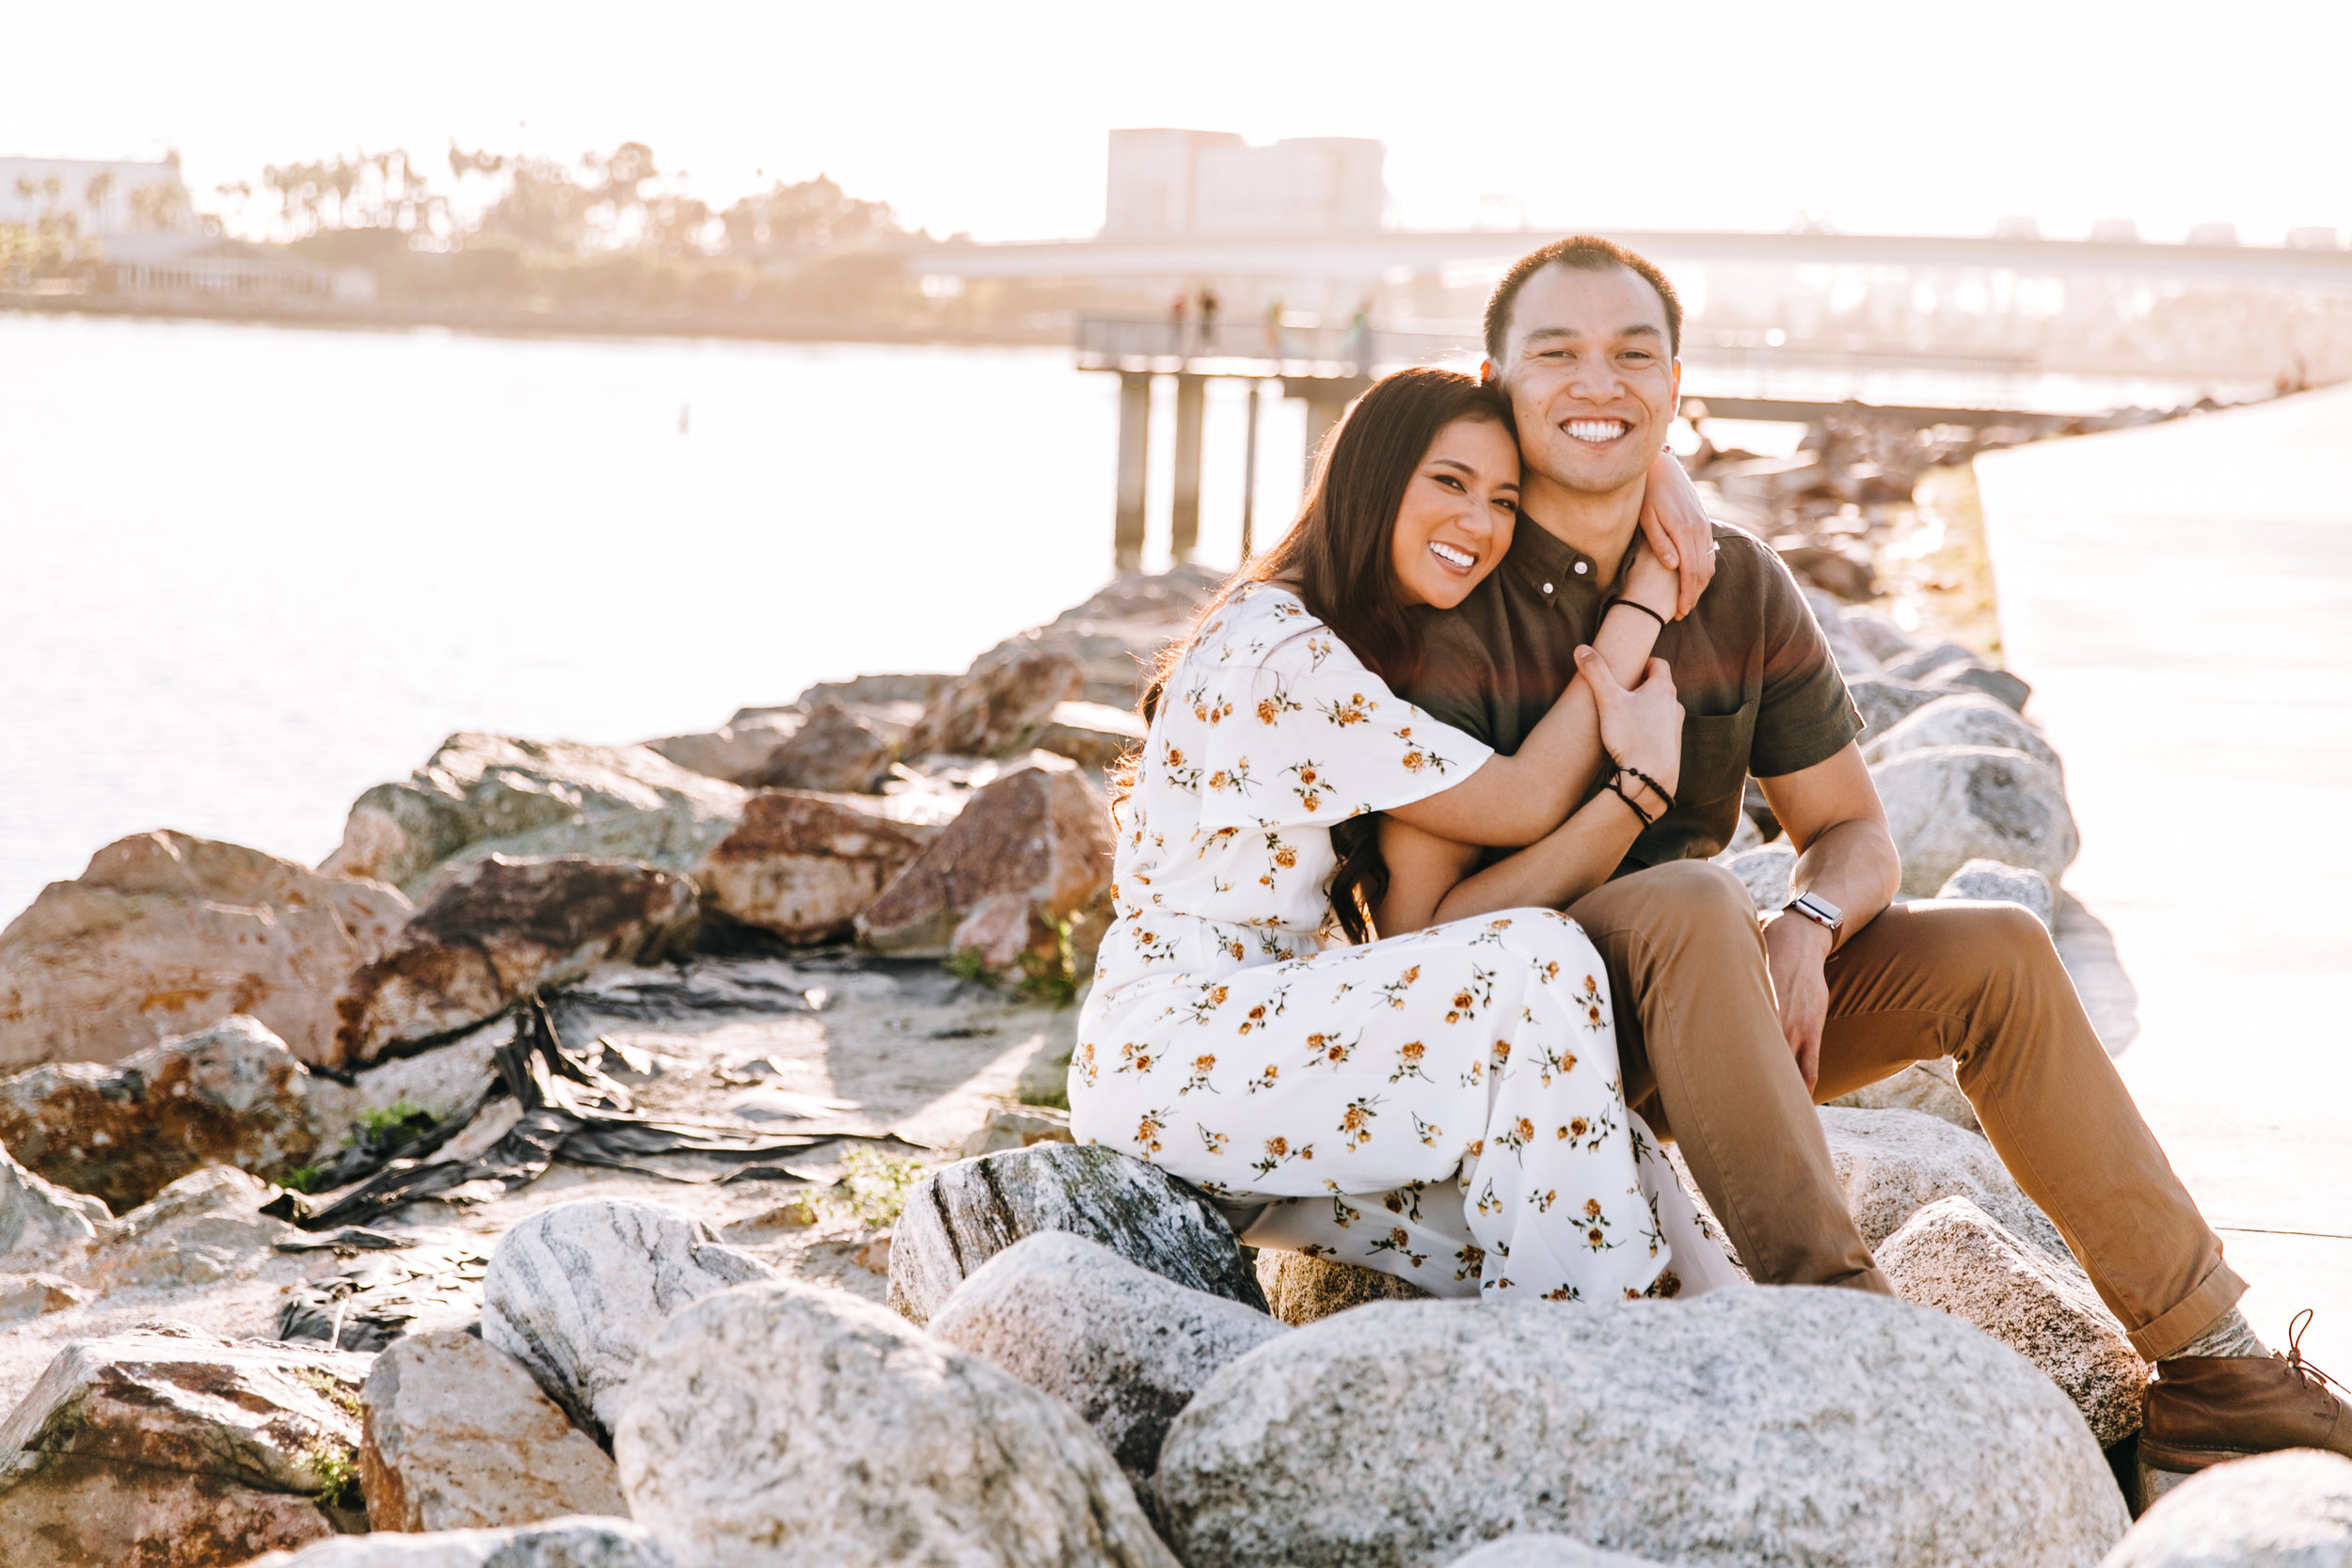 Long Beach engagement photographer, SoCal engagement photographer, Southern California engagement photographer, Lions Lighthouse, OC engagement photographer, LA engagement photographer